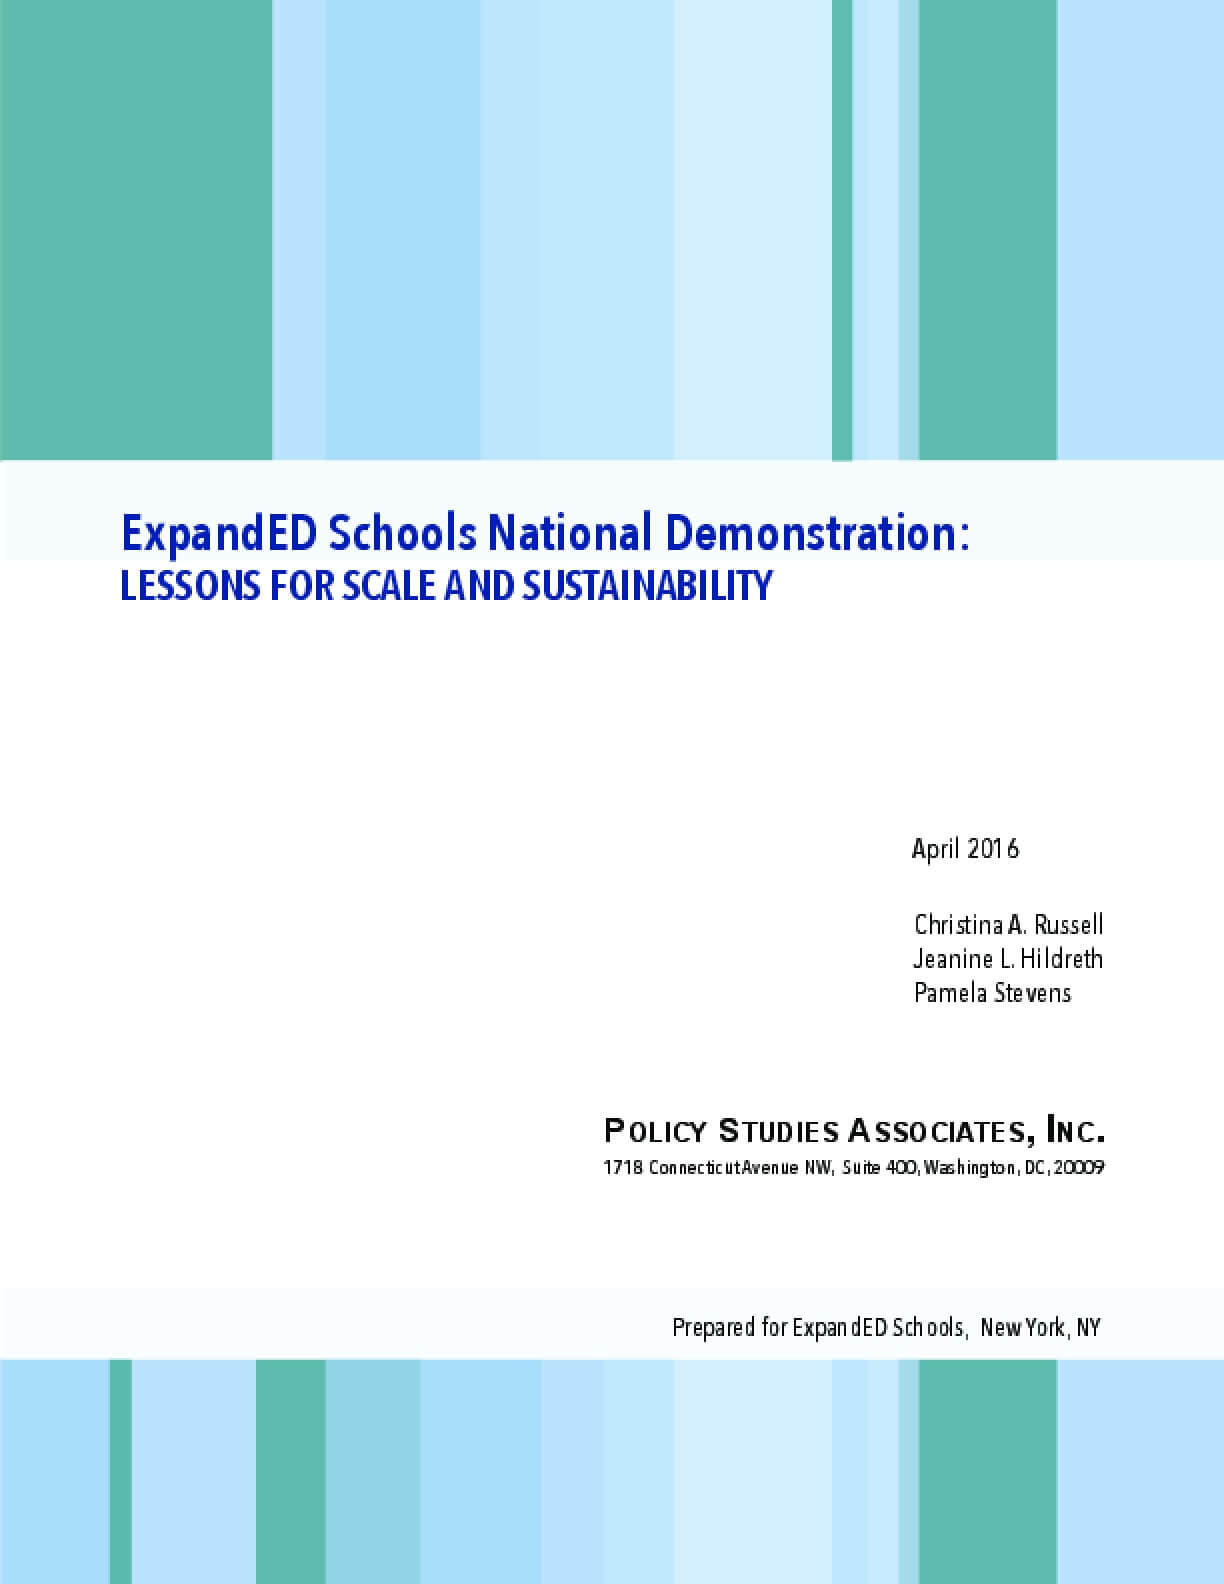 ExpandED Schools National Demonstration: Lessons for Scale and Sustainability